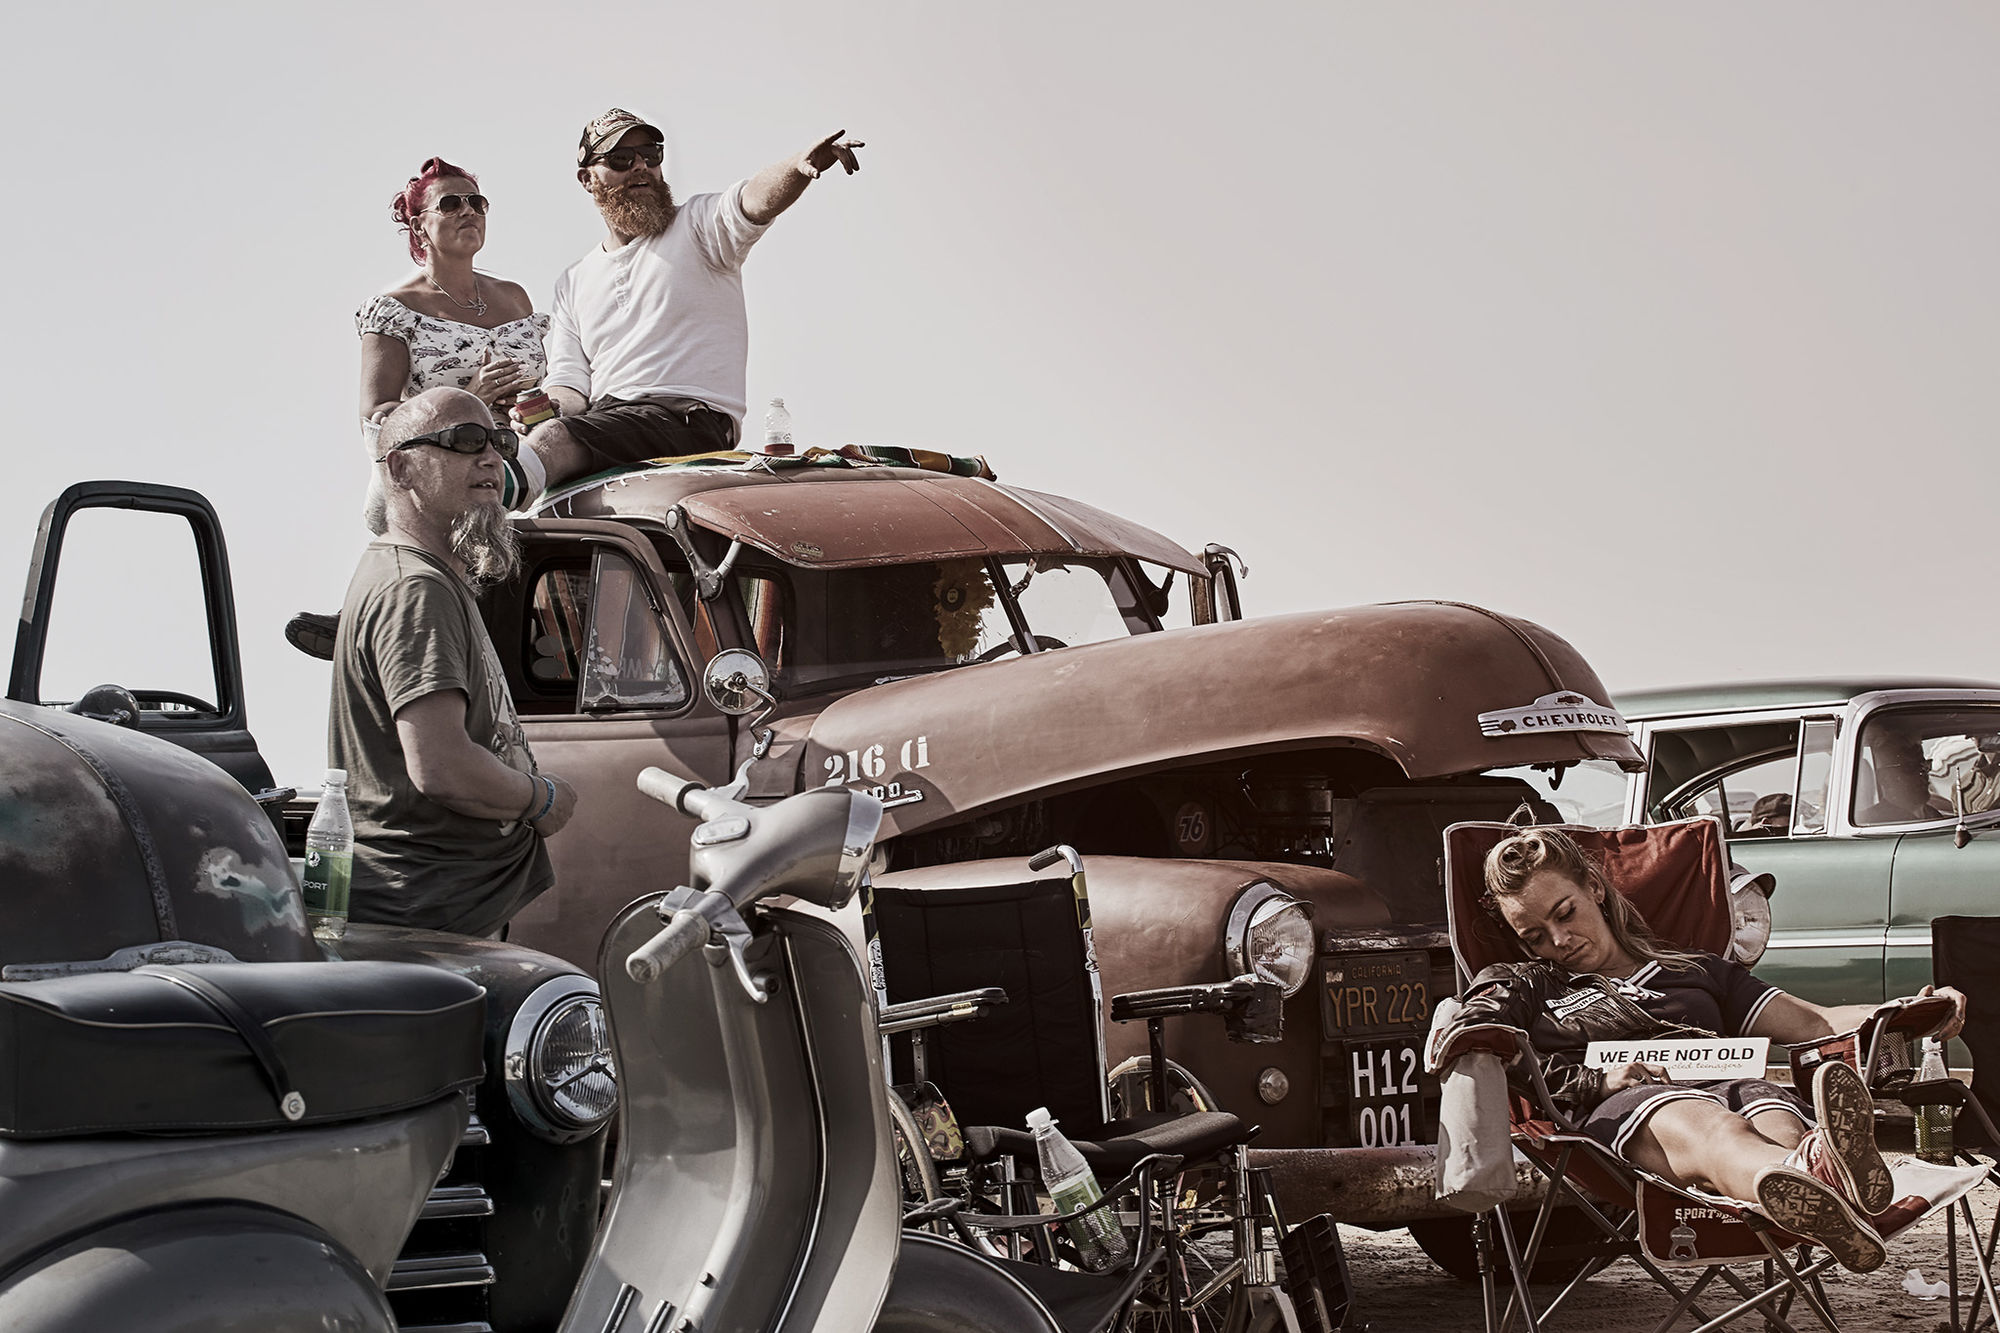 """MANU AGAH PHOTOGRAPHY - """"GET READY, PULL UP!"""" Personal work at the Rømø Motor Festival, Denmark"""